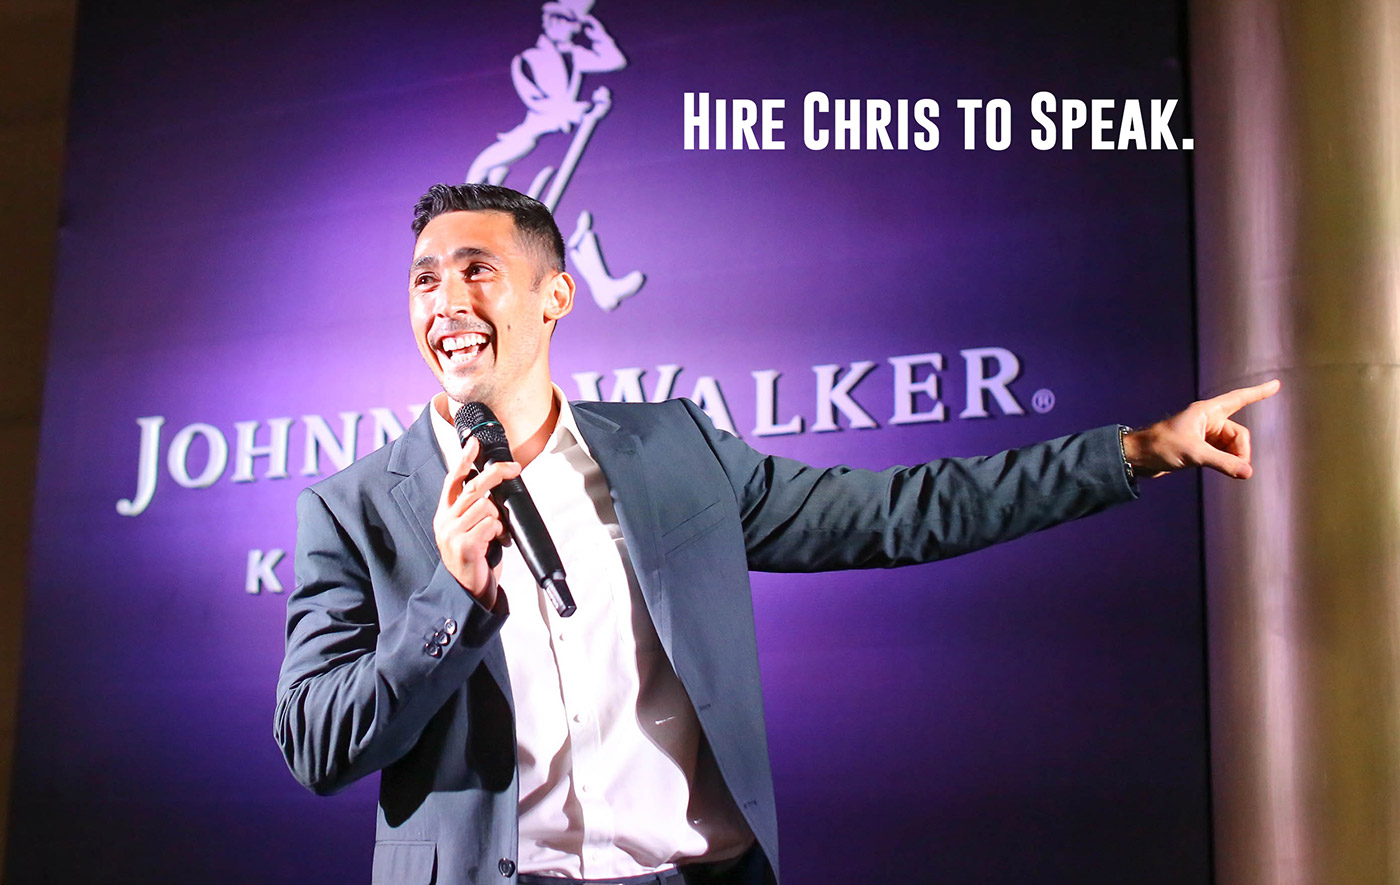 hire-chris-54